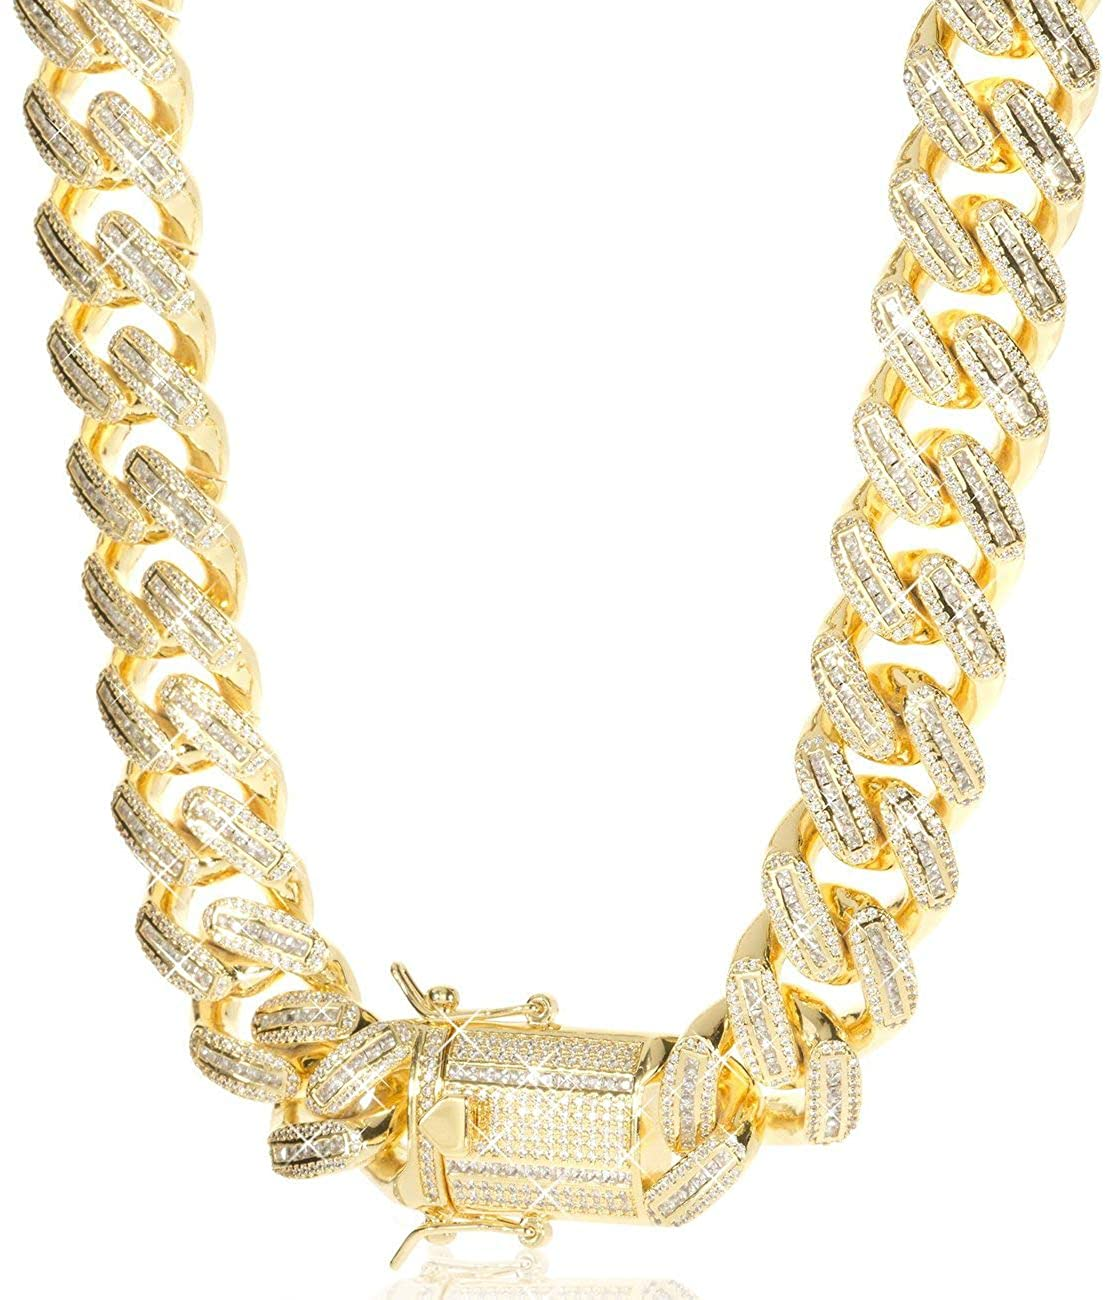 TRIPOD JEWELRY 18mm Iced Out Baguette Cuban Link Chain or Bracelet - Hip Hop Gold Chains 18K or White Gold Plated Miami Cuban Link Chains Baguette CZ Diamond Cuban Link Choker Gold Bracelets